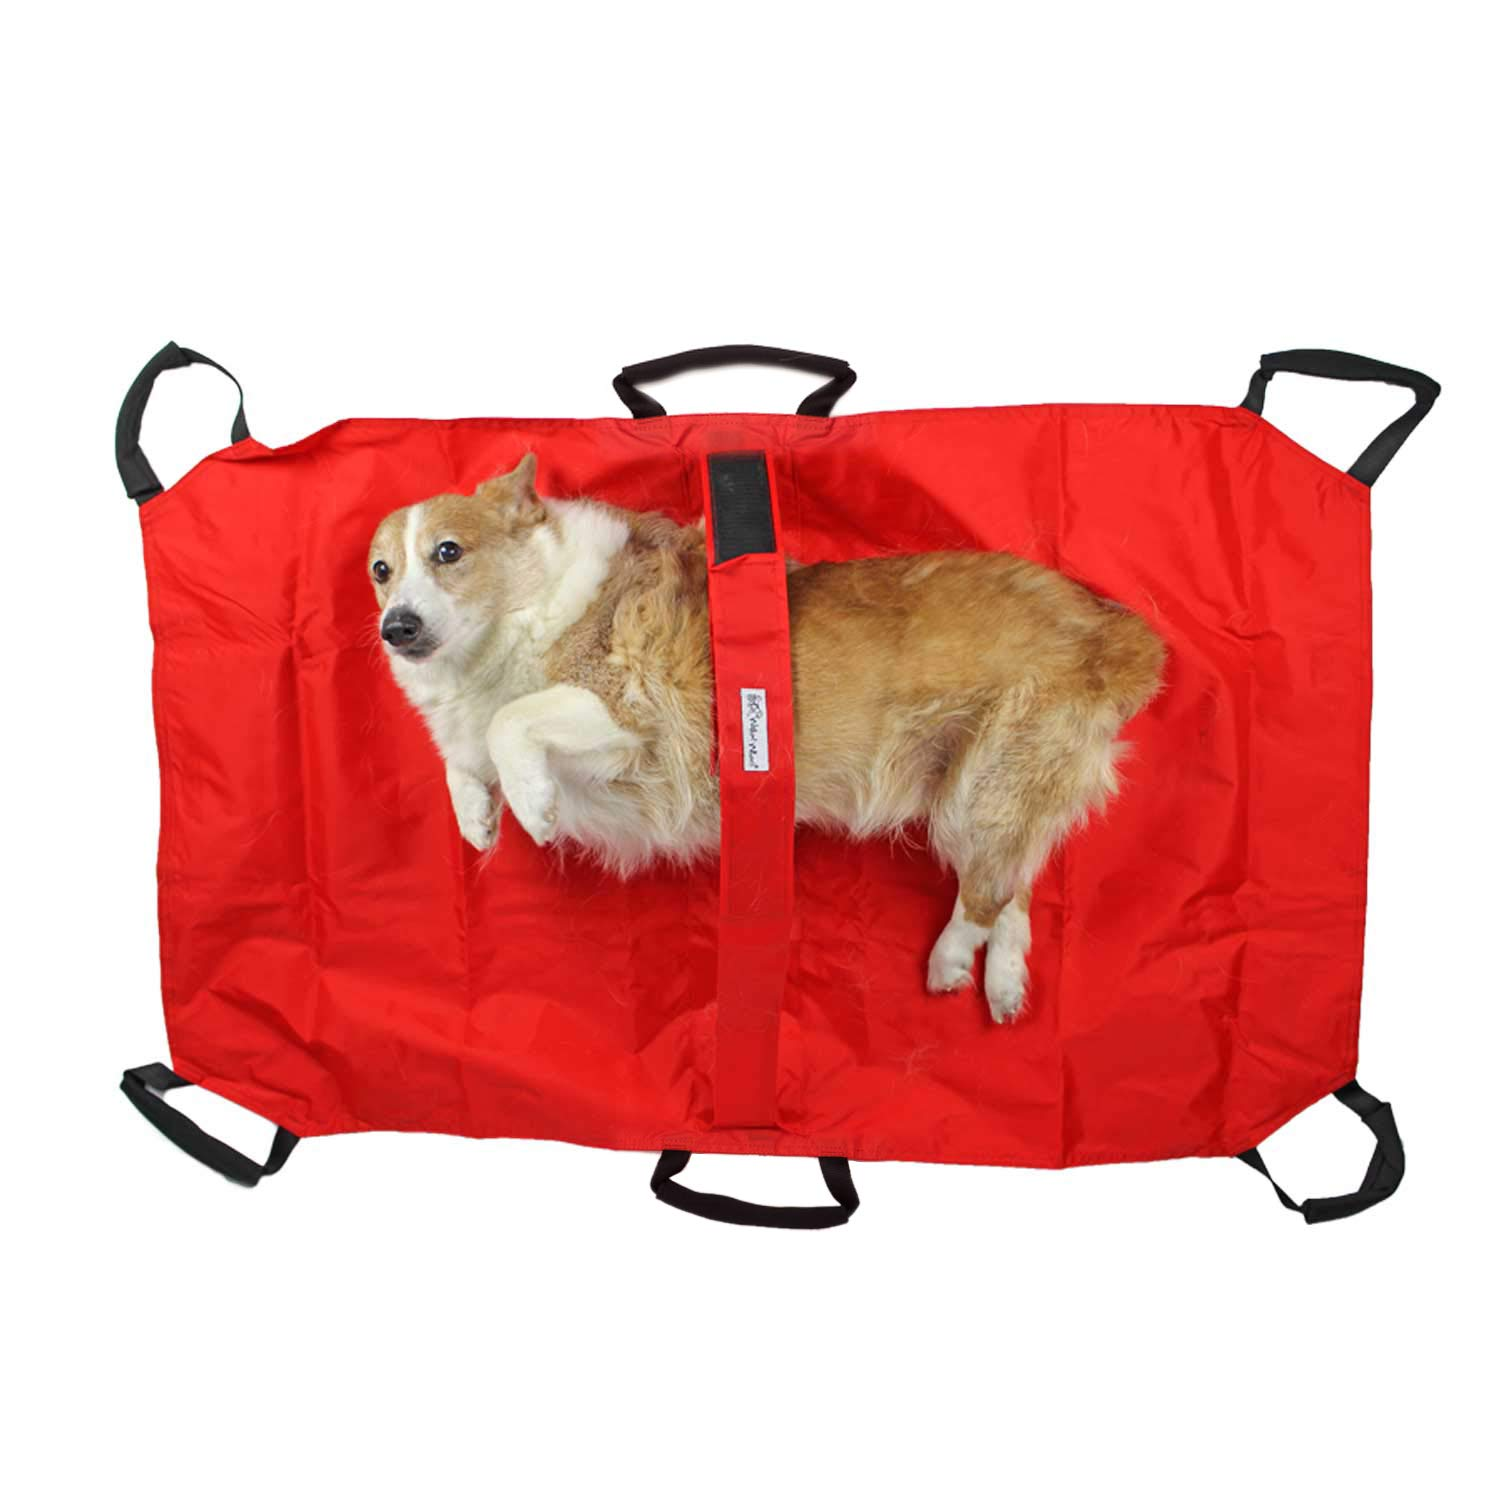 Safety Red Pet Transport Stretcher for Dogs